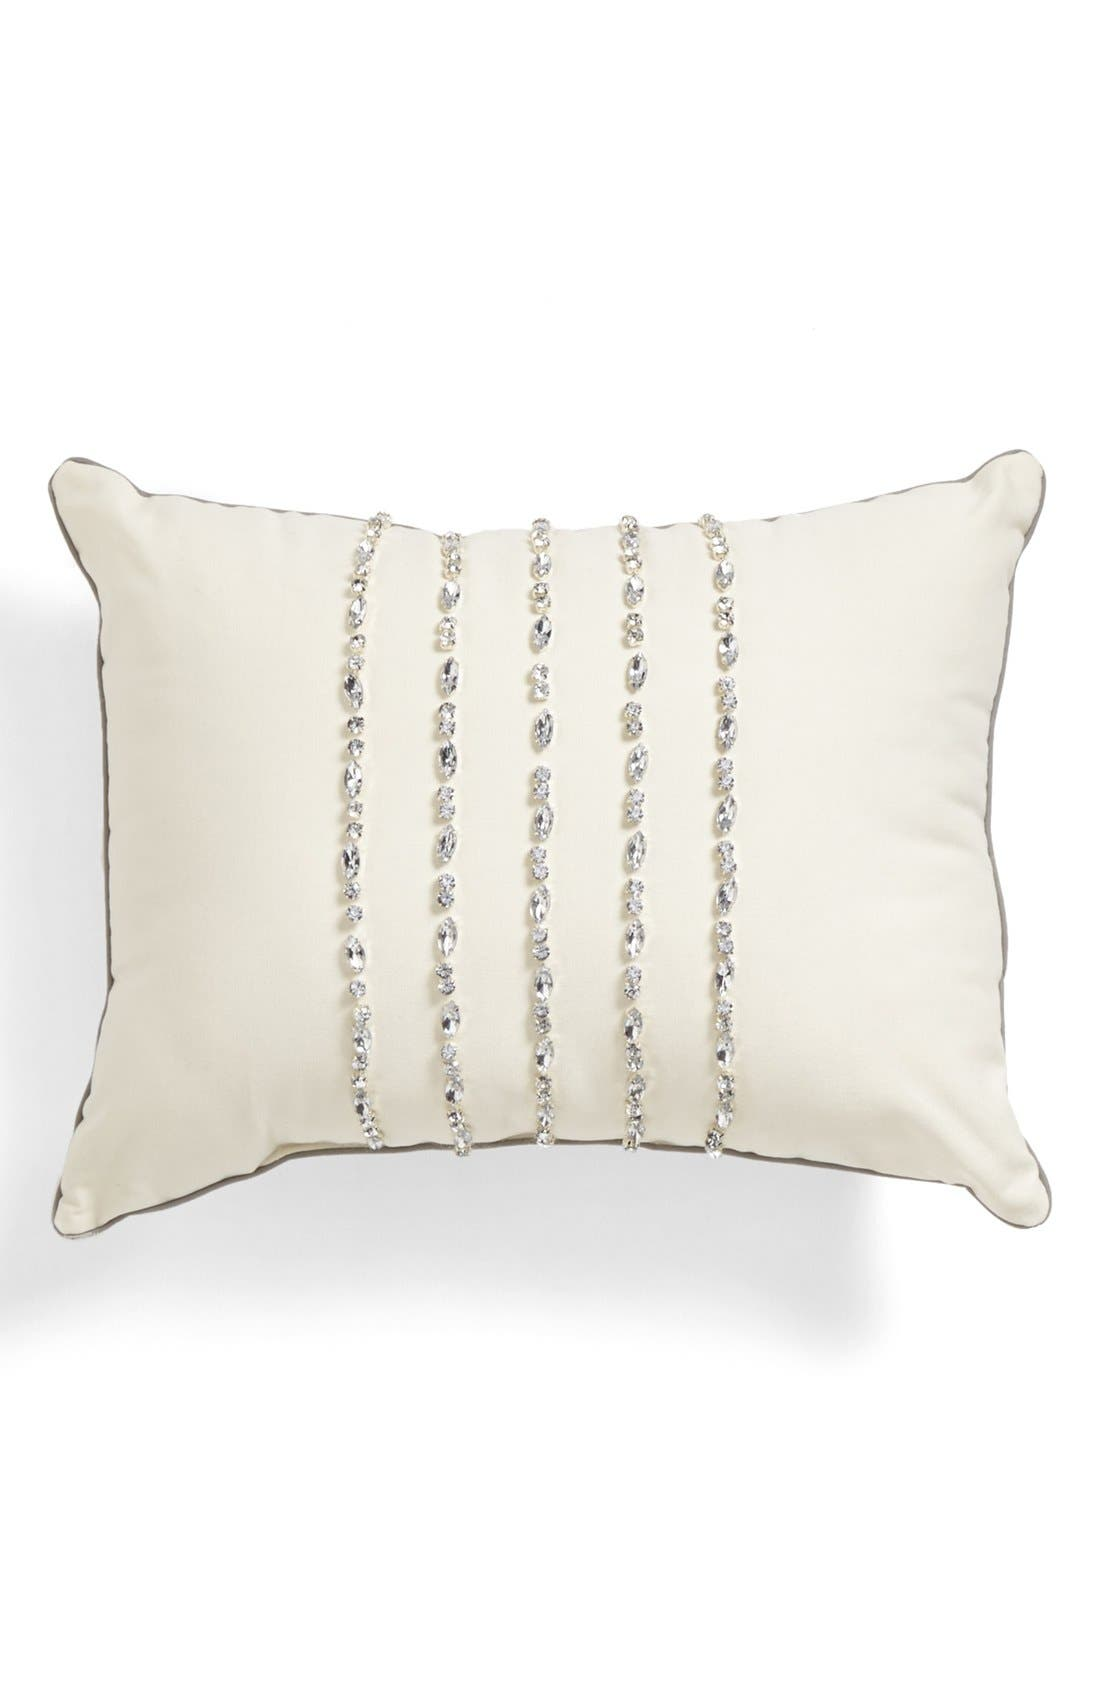 Main Image - Laundry by Shelli Segal 'Alexa' Pillow